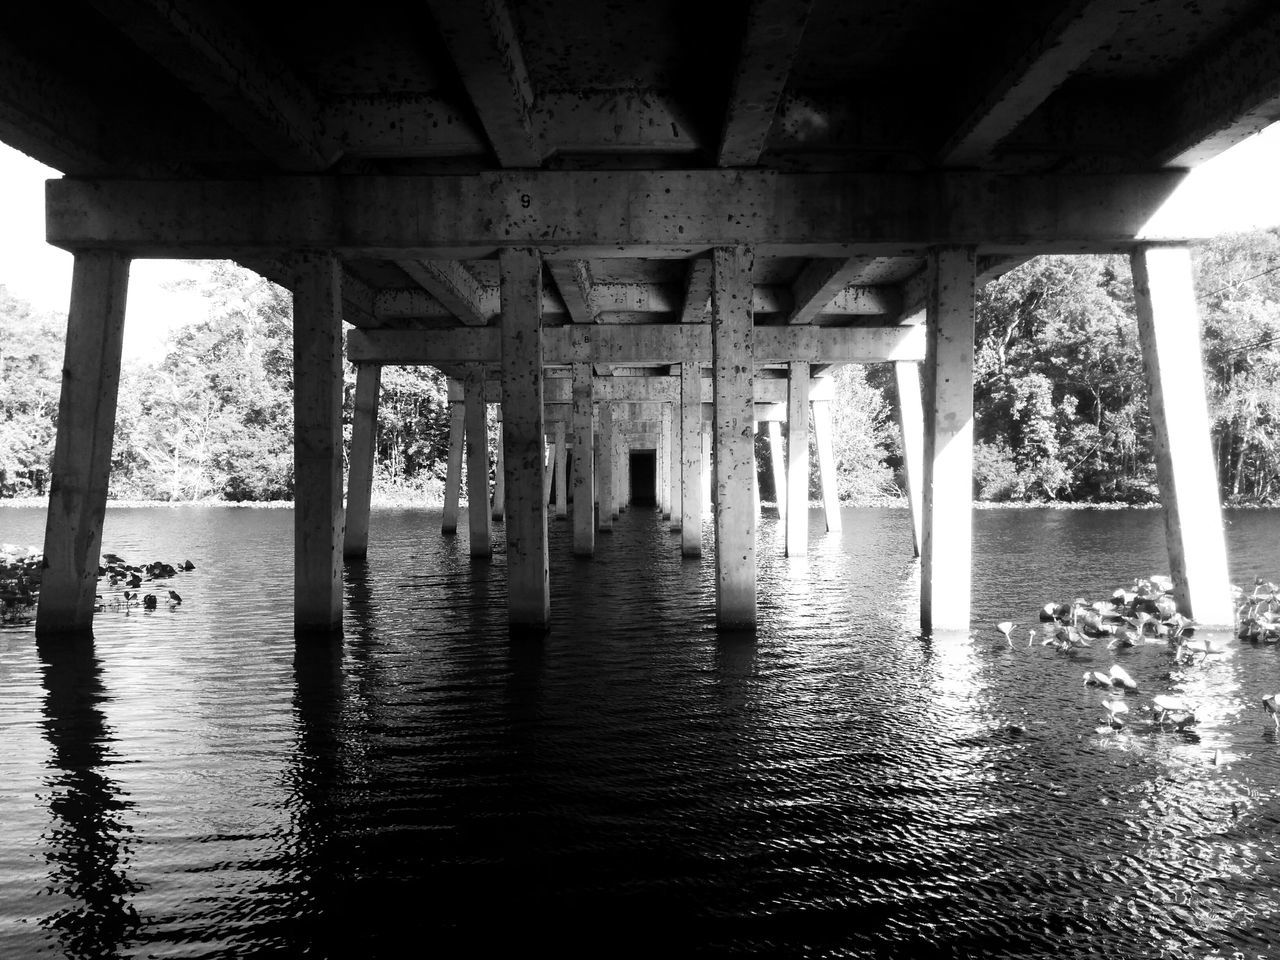 Bridge Black And White Photography Under The Bridge Water Reflections Riverside Playing With The Shadows Lines And Angles Lines And Patterns Ripples In The Water Concrete Columns Columns And Pillars